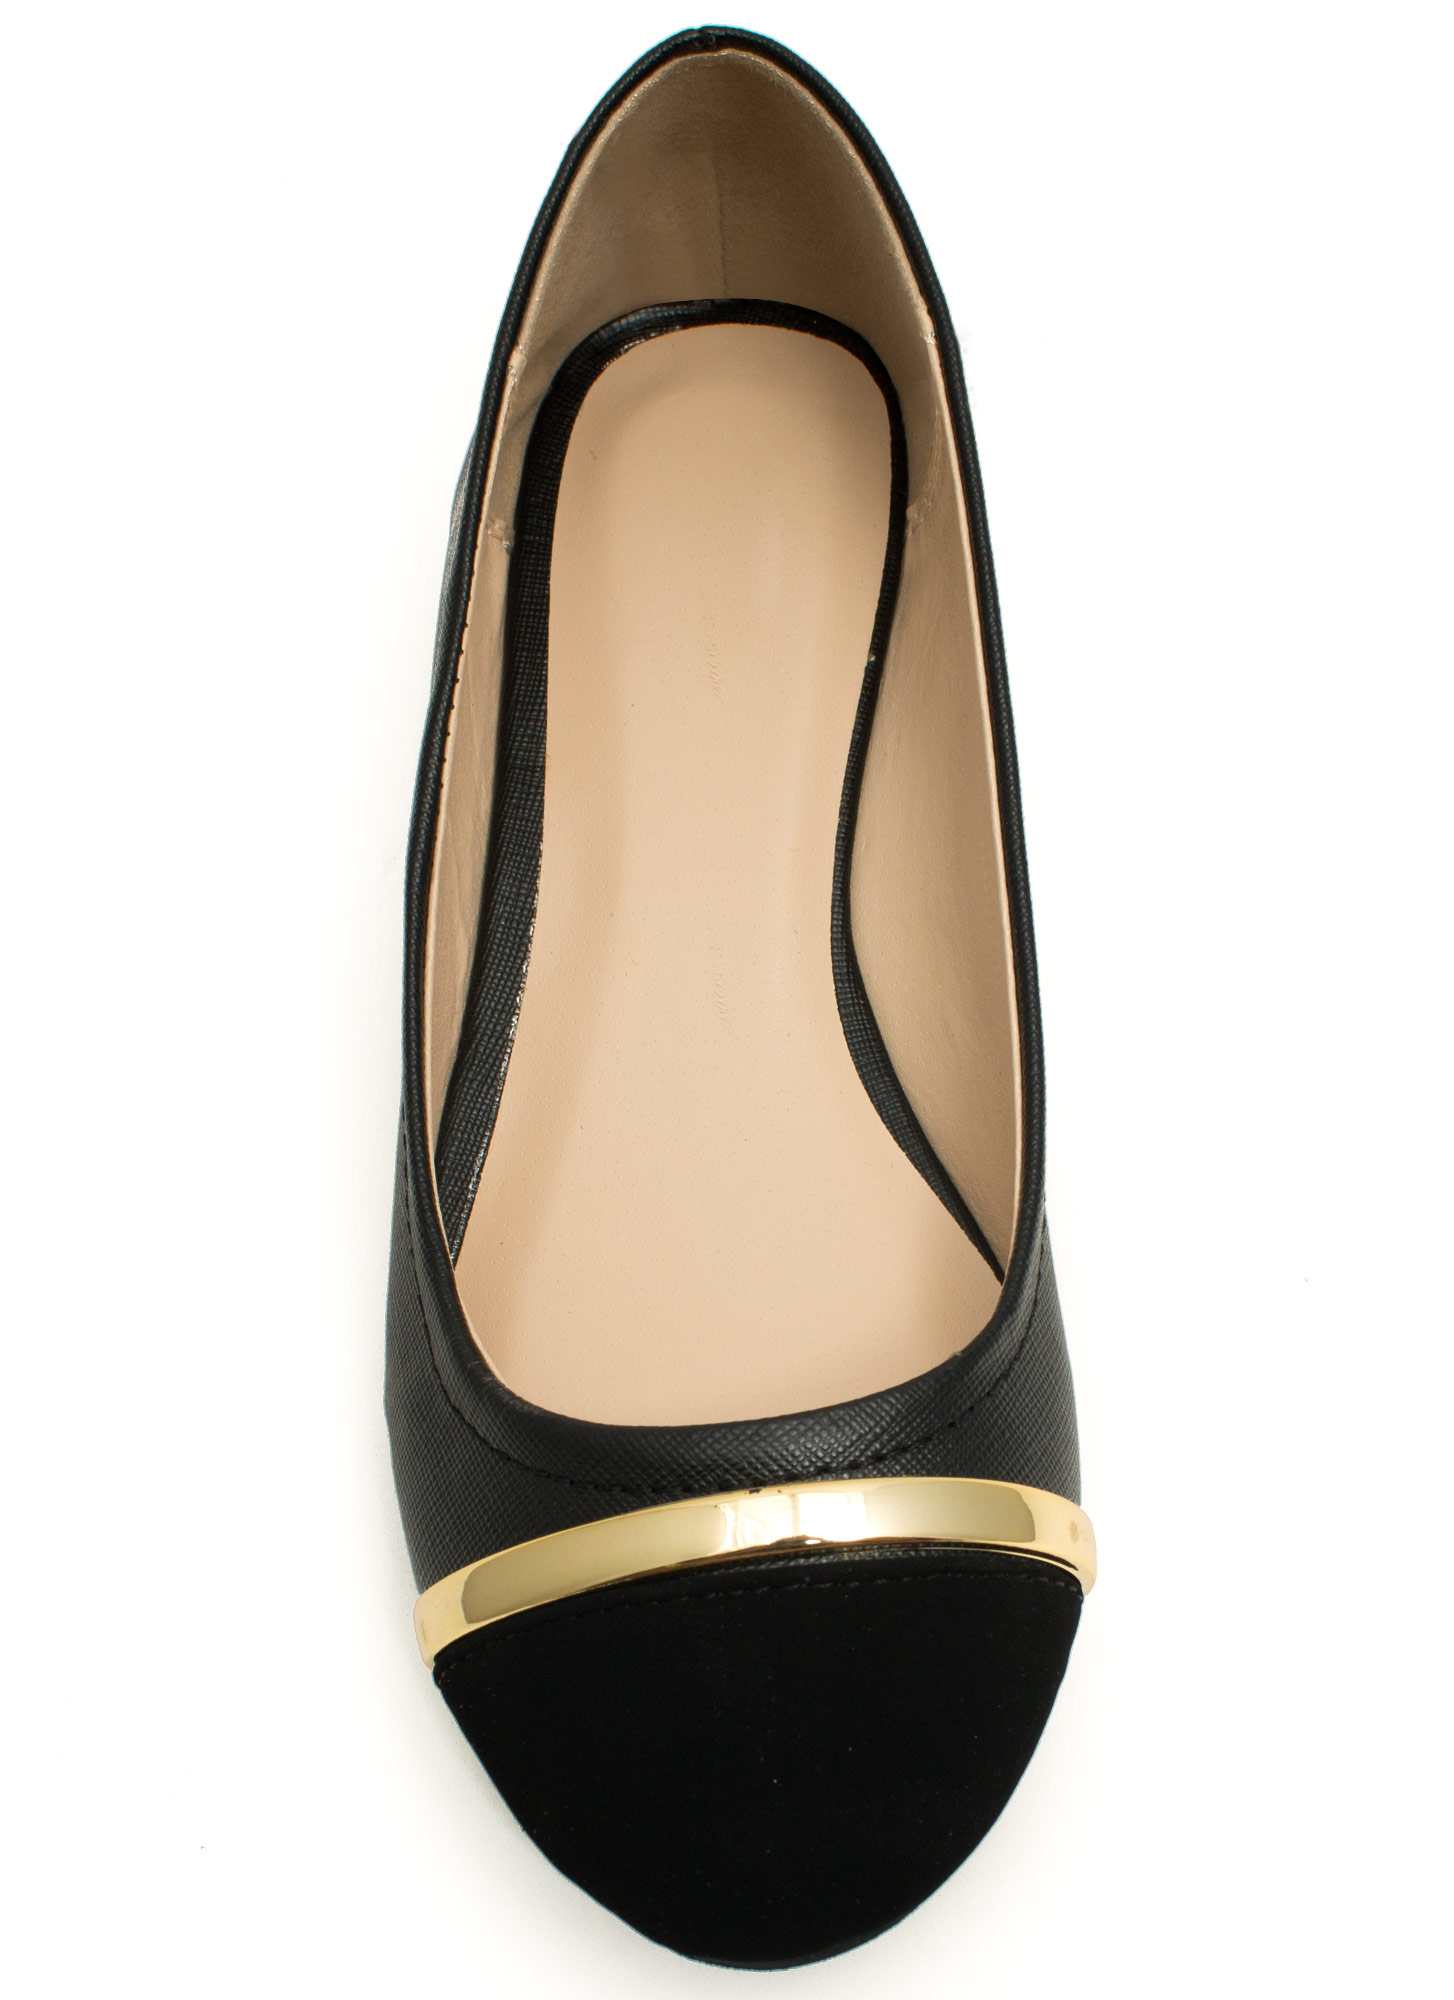 Stay In Line Cap Toe Ballet Flats BLACK